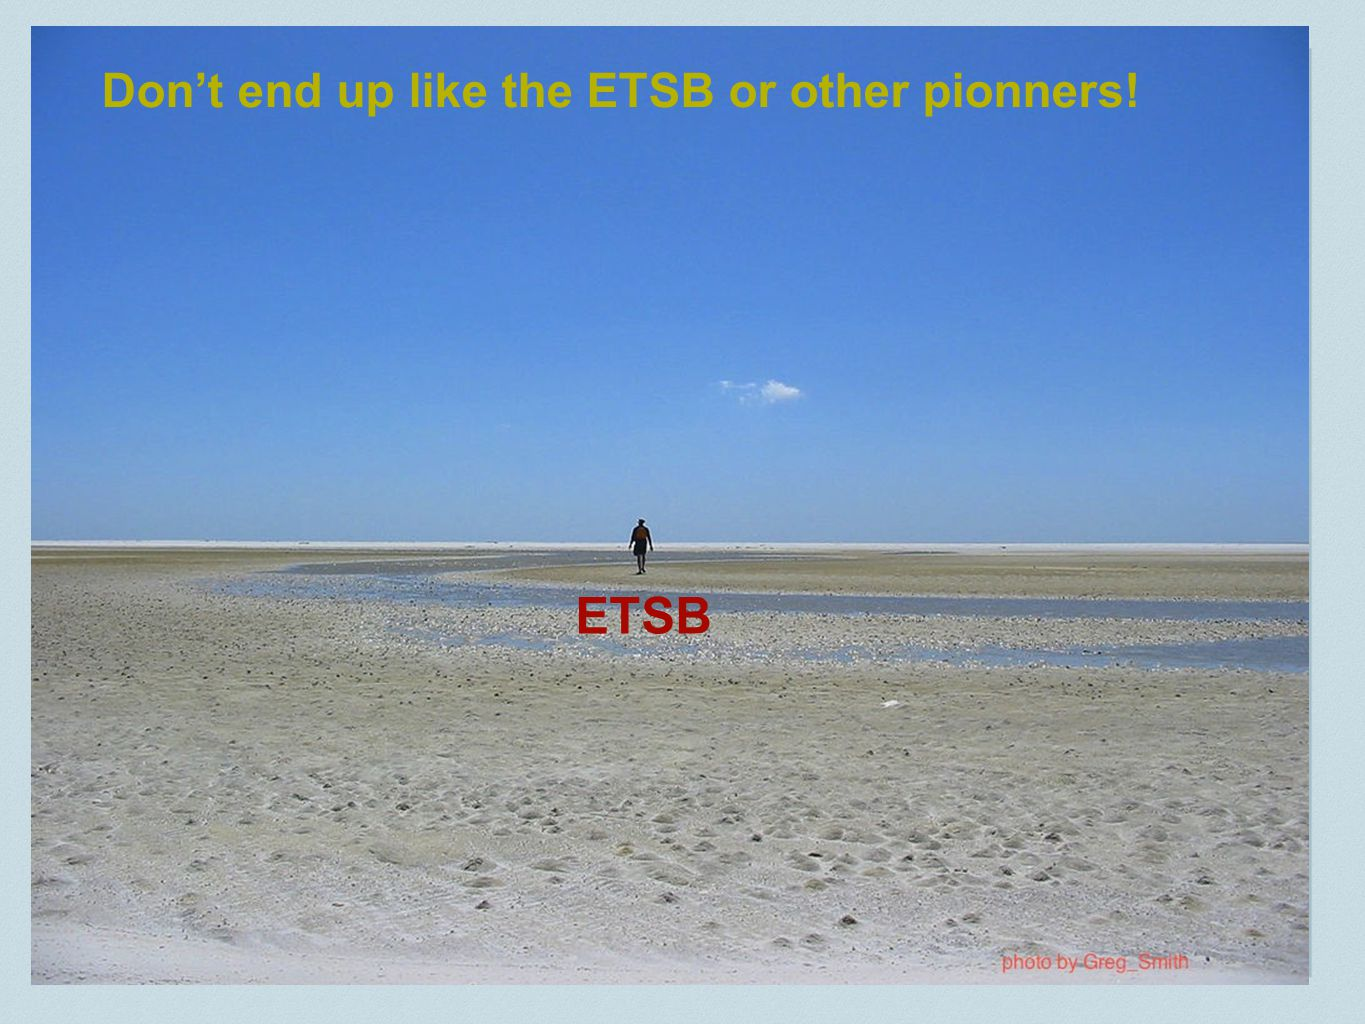 ETSB Don't end up like the ETSB or other pionners!